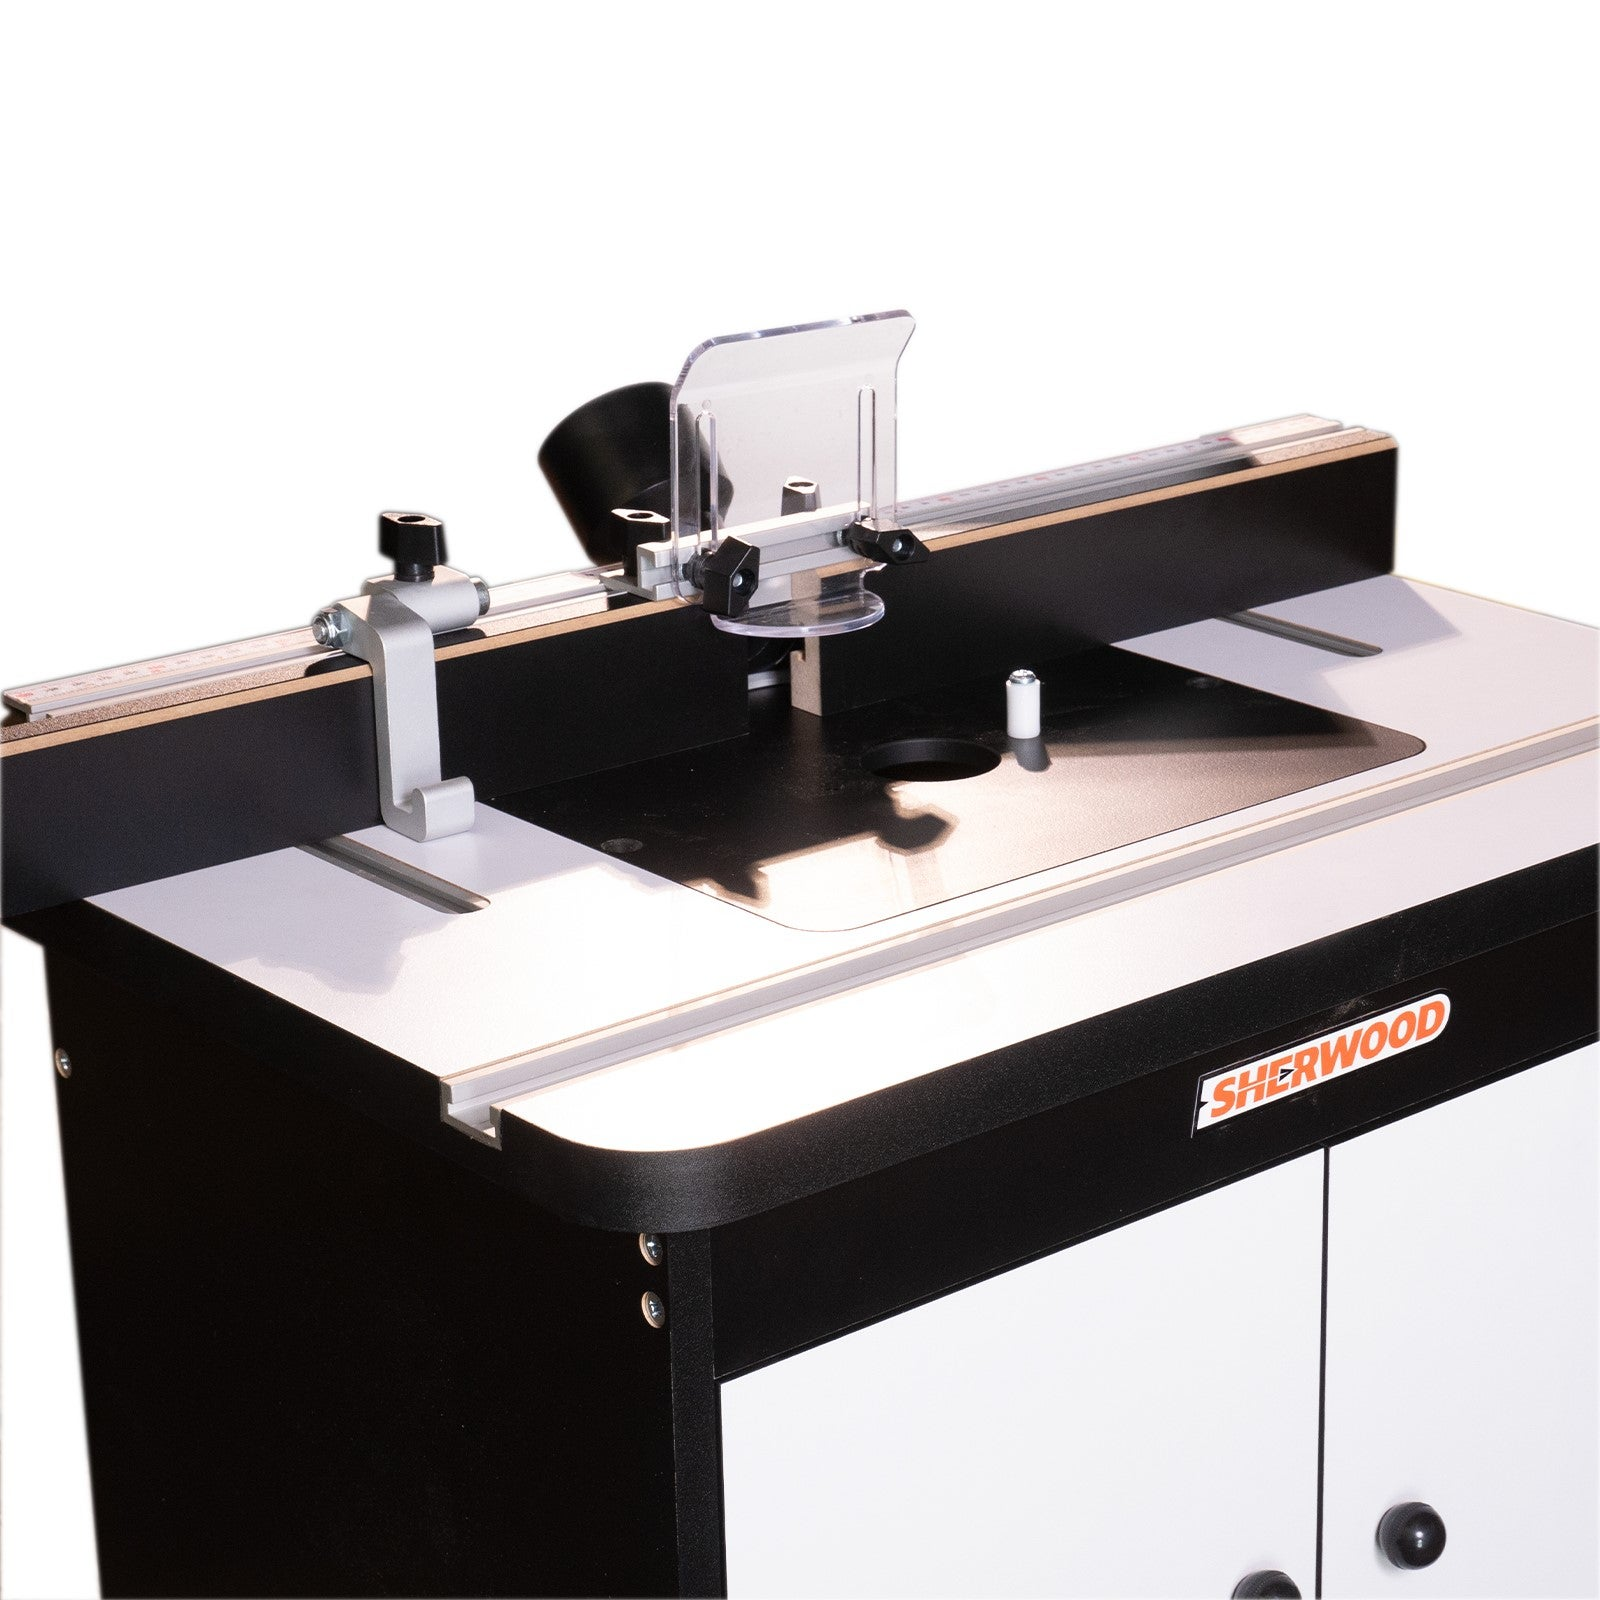 MDF Benchtop Router Table | Buy Power Tools - 9348064040206